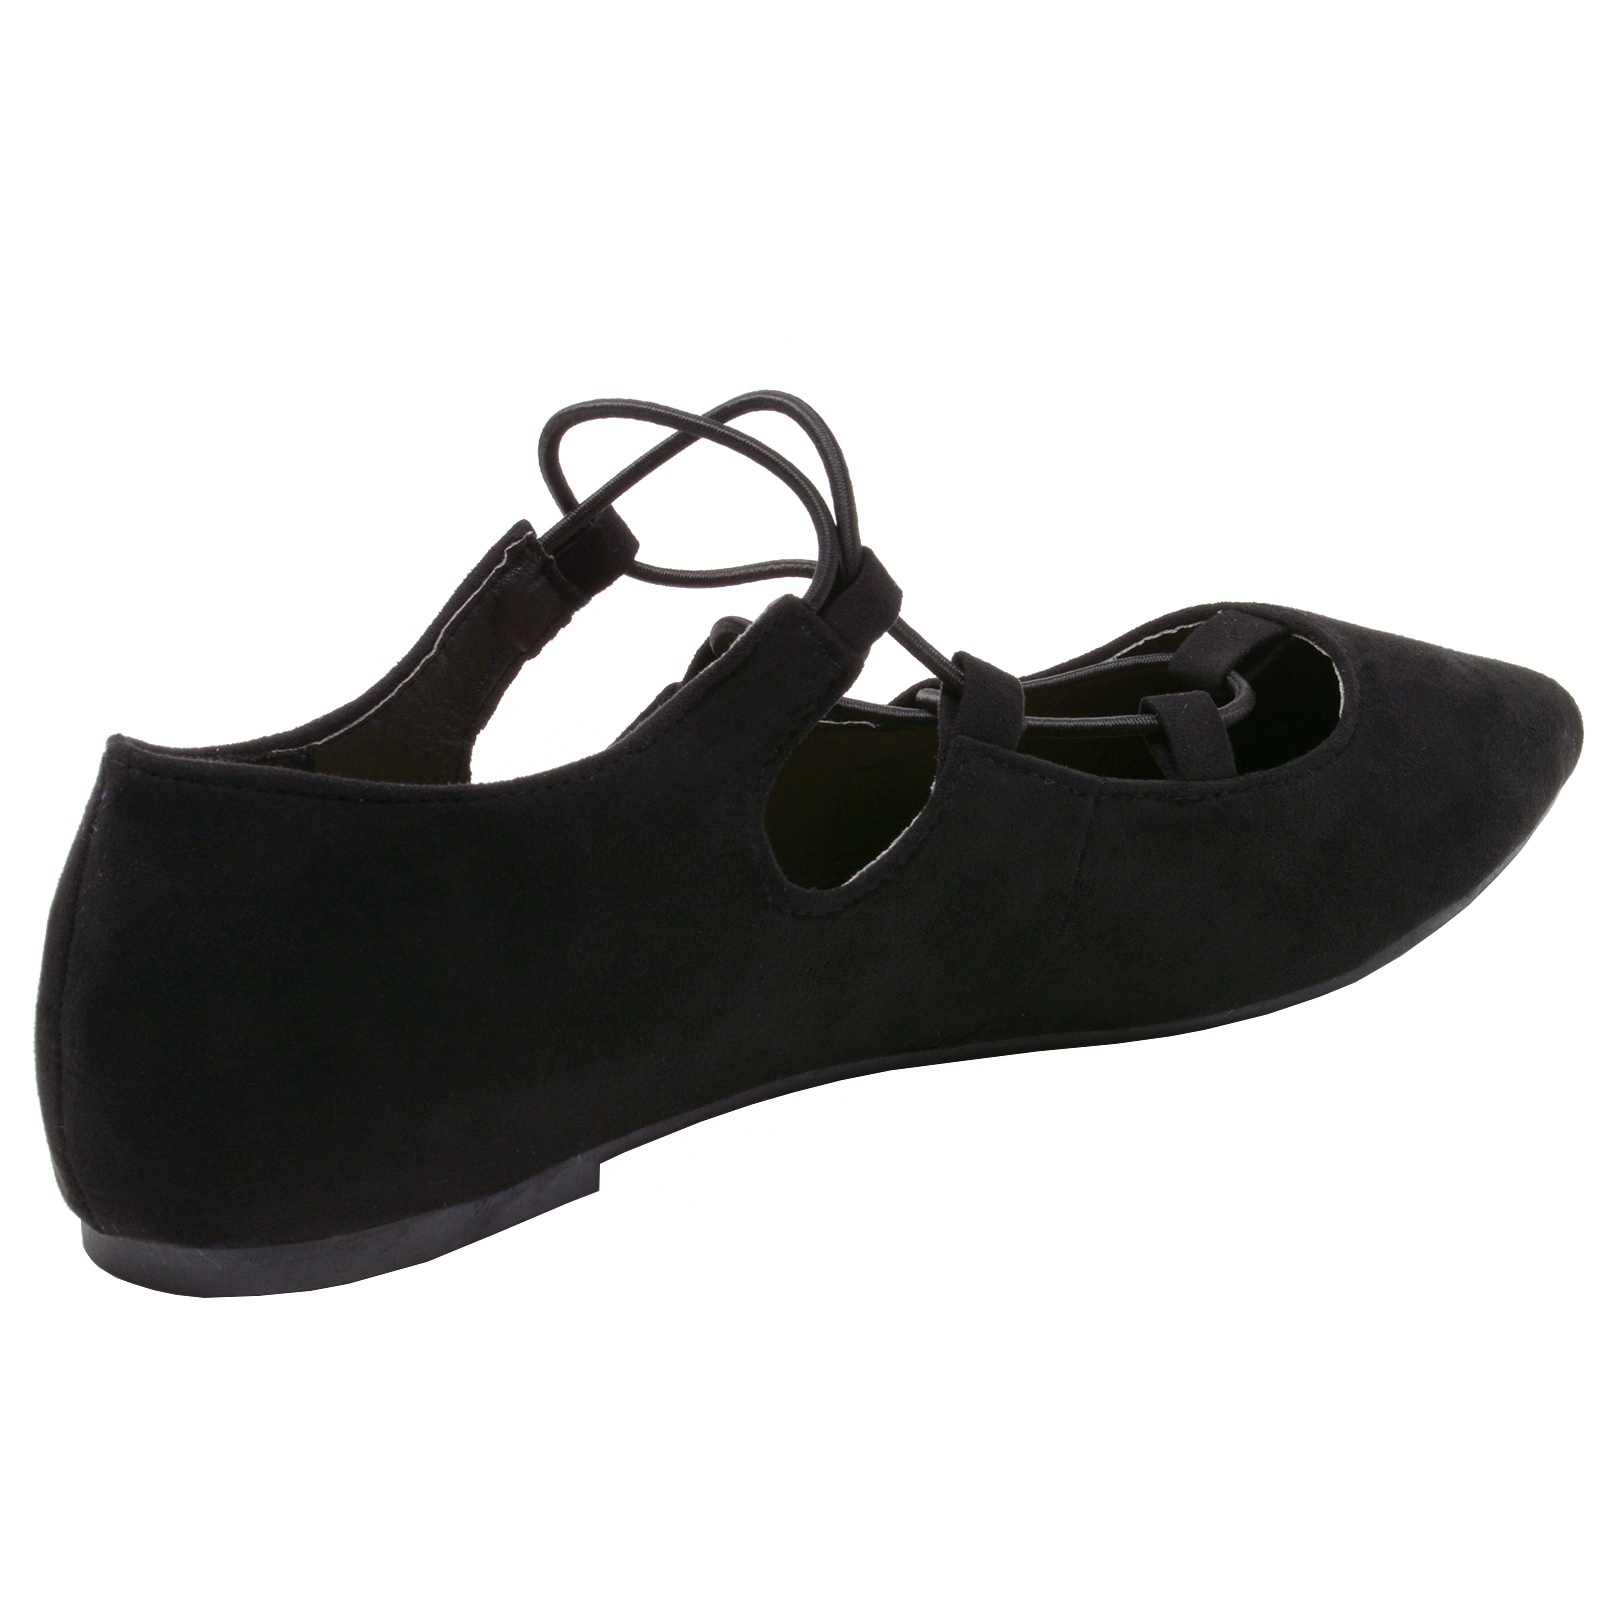 Alpine-Swiss-Elena-Women-s-Pointed-Toe-Ballet-Flats-Strappy-Slip-On-Flat-Shoes